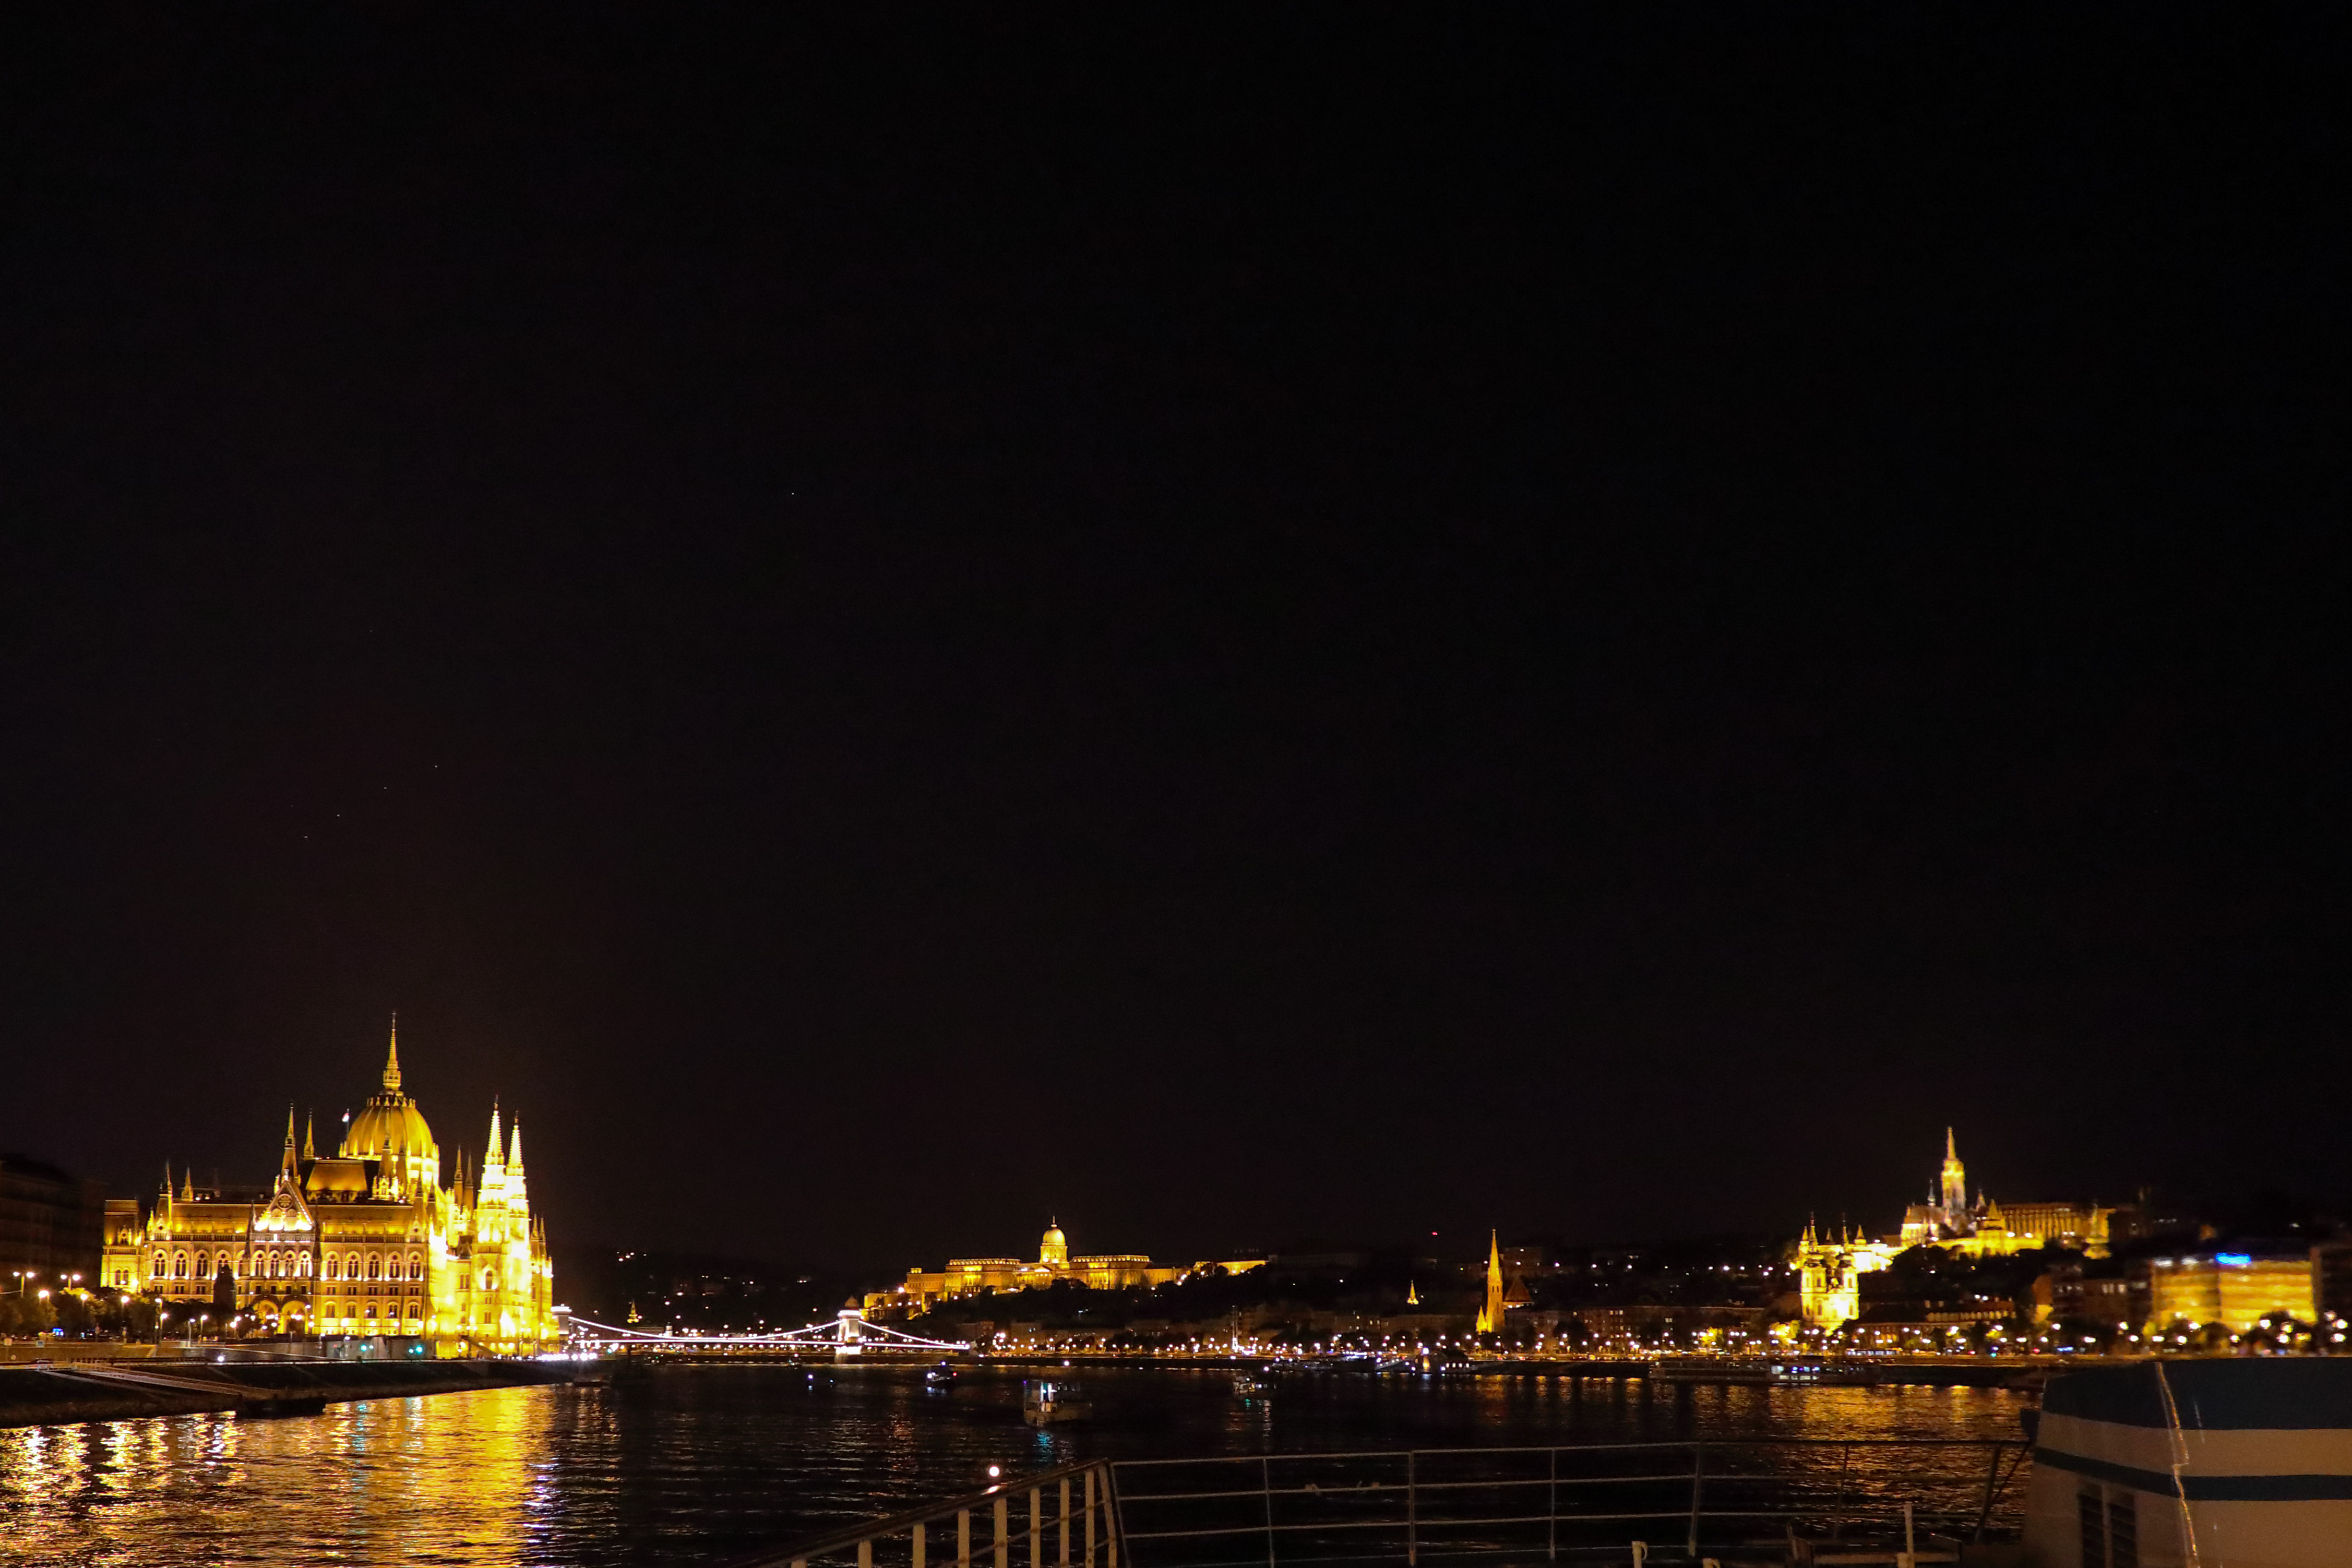 574B7070_c.jpg - Sail away from  Budapest . To the left is the  Hungarian Parliament Building , to the right is the  Matthias Church  with the  Fisherman's Bastion  and in the center above the  Danube  is  Buda Castle